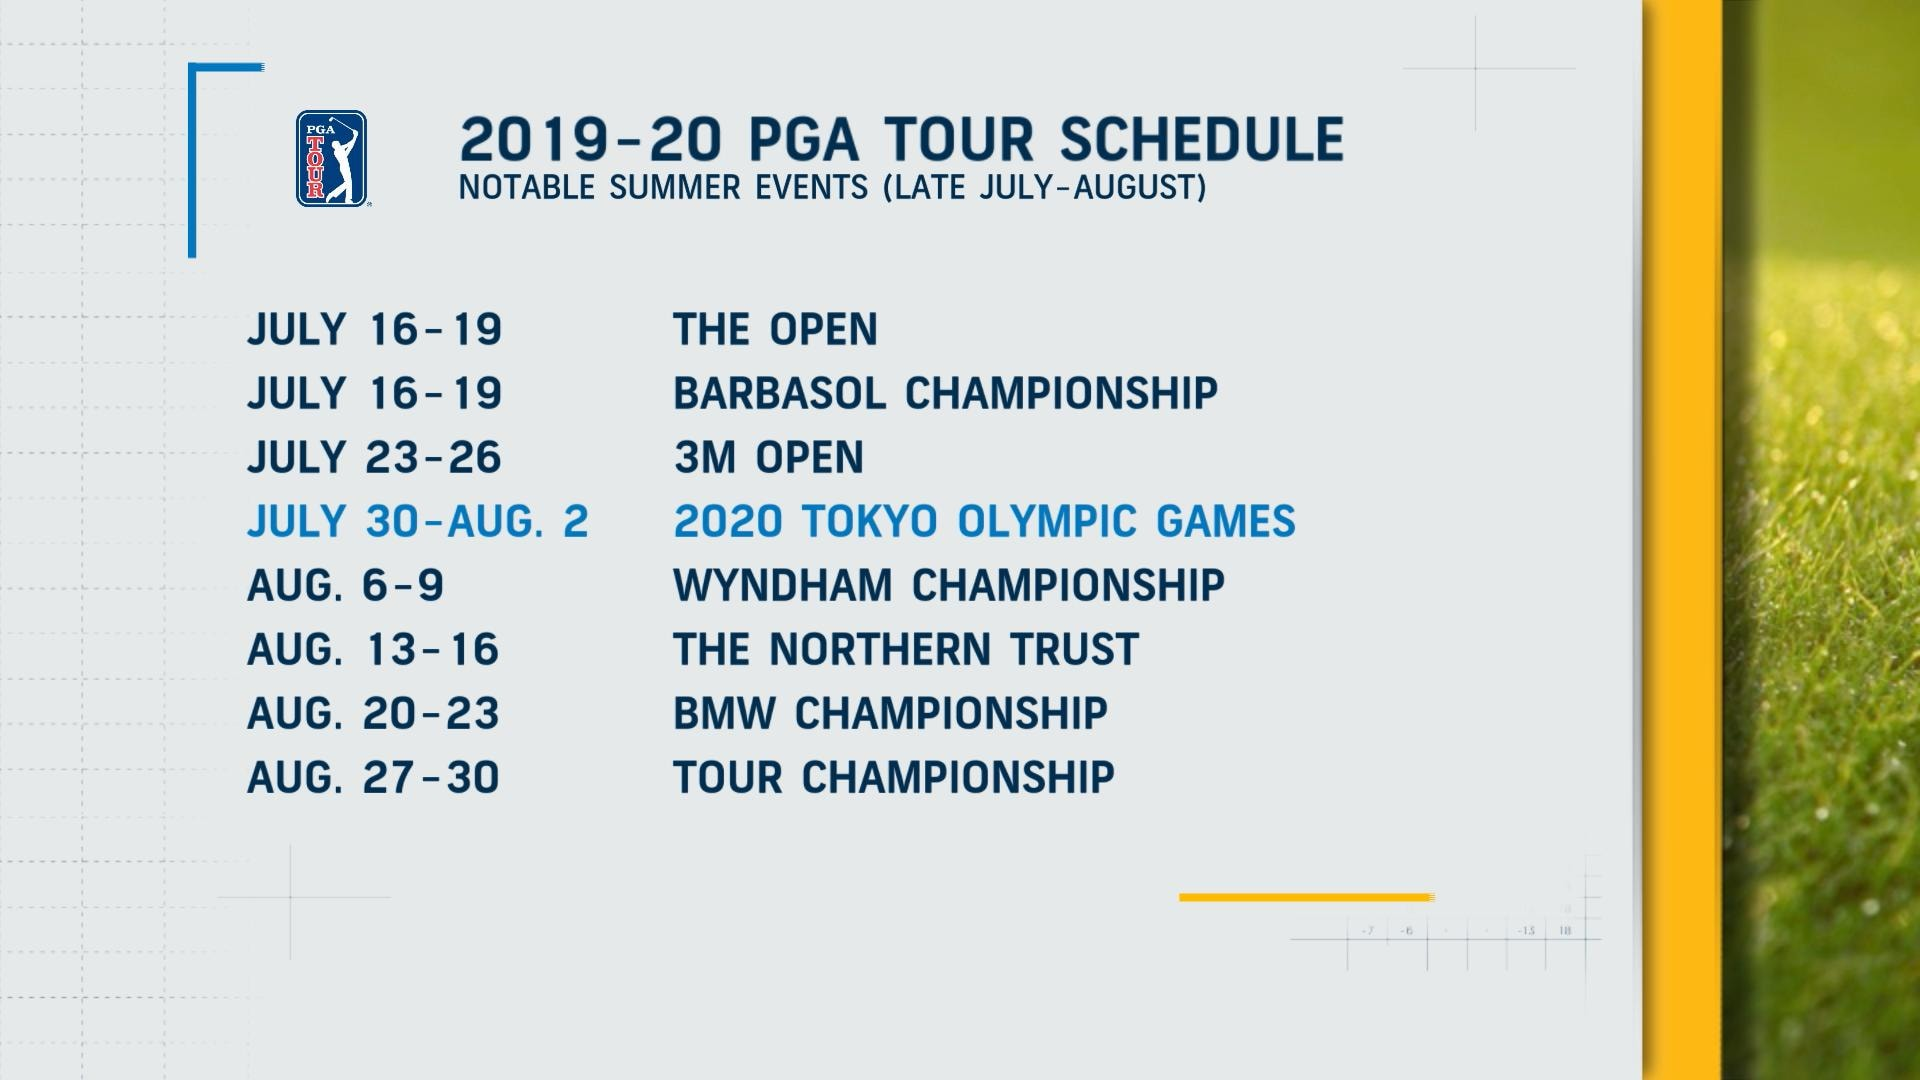 Pga Tour Schedule 2020 2020 Tokyo Olympics Impacting PGA Tour Schedule | Golf Channel